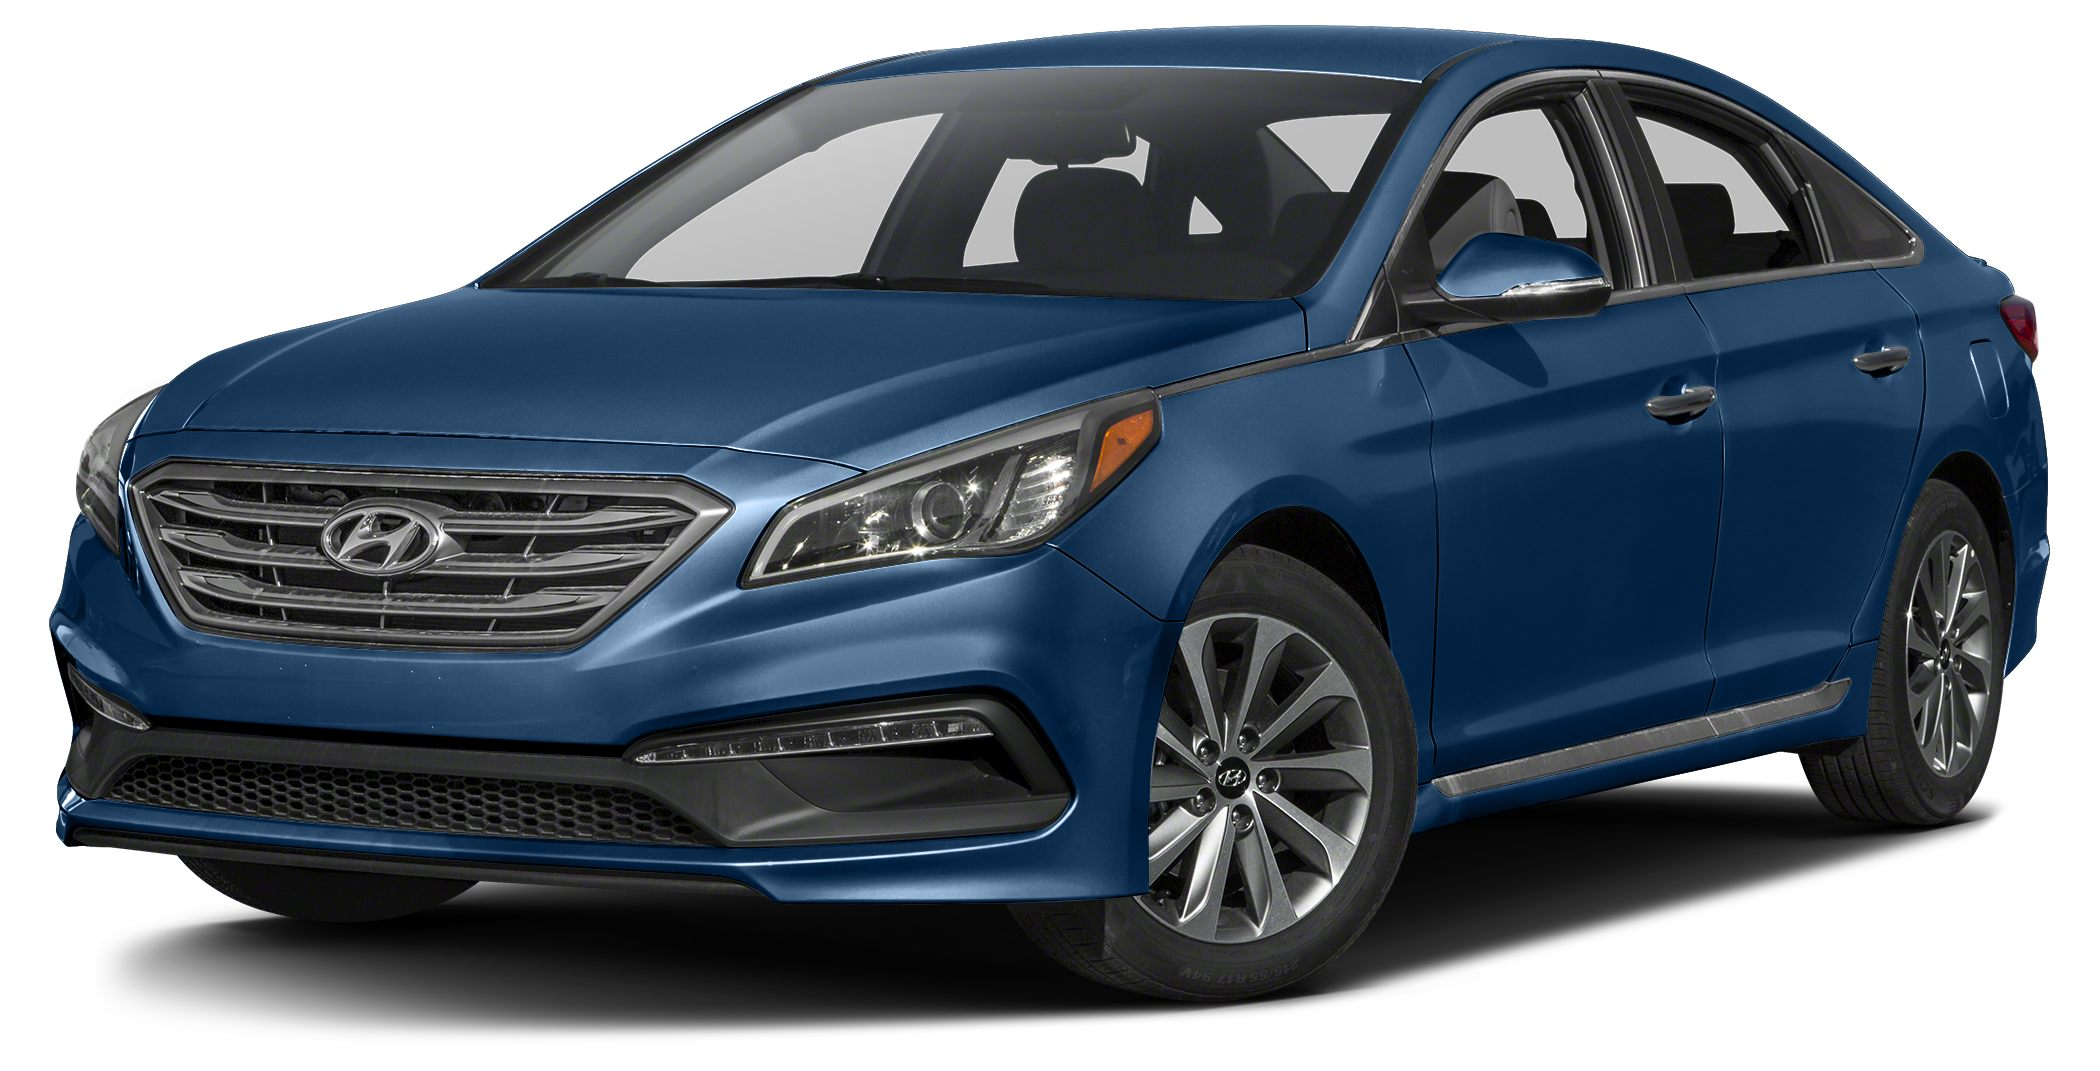 2017 Hyundai Sonata Sport Bluetooth Miles 10Color Lakeside Blue Stock 15312 VIN 5NPE34AF0HH